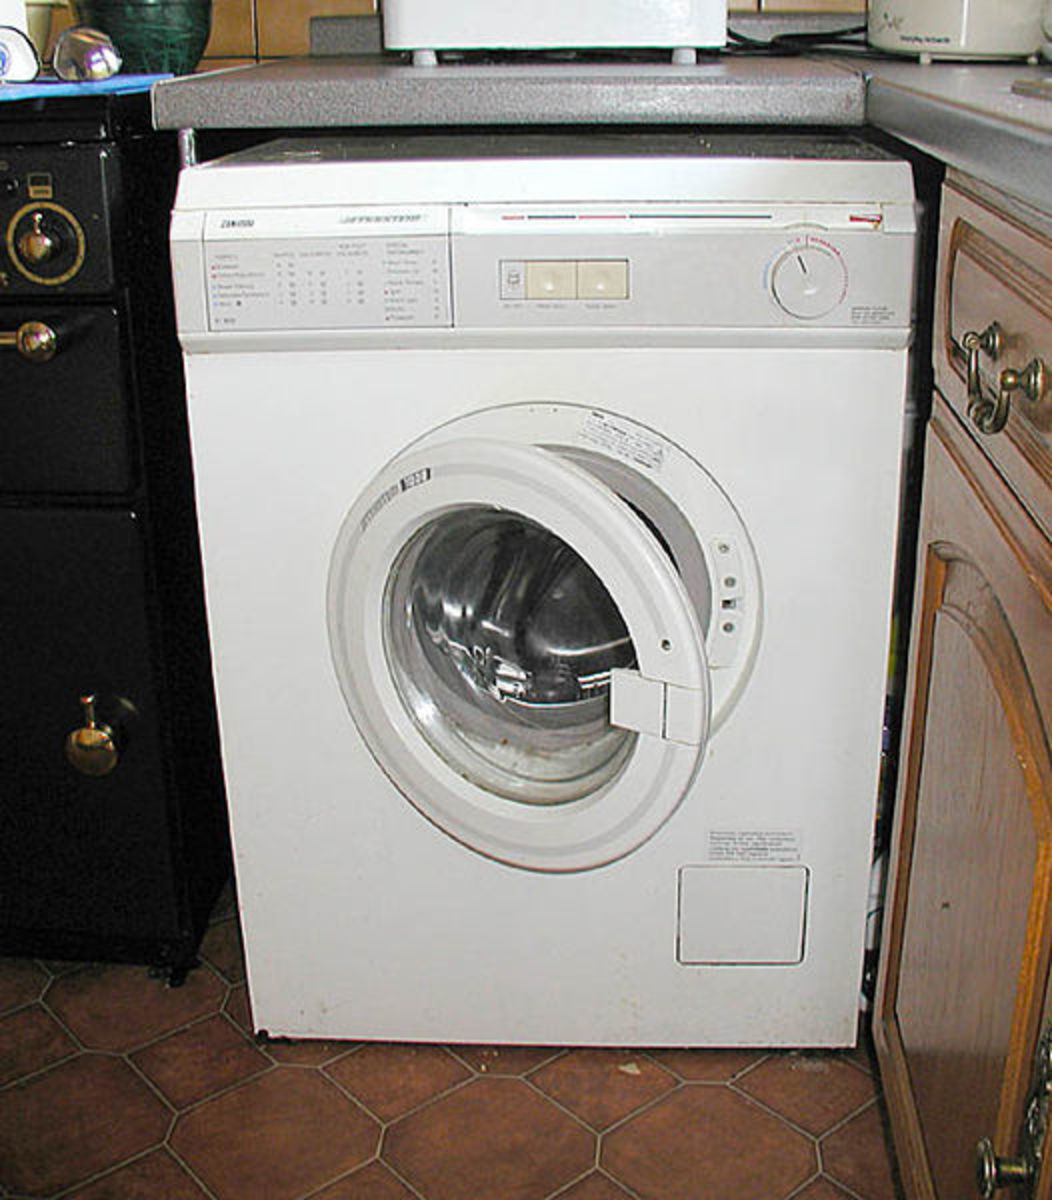 The washing machine is not so new.  Even in ancient times, women would use a natural whirlpool to help them wash clothing more efficiently.